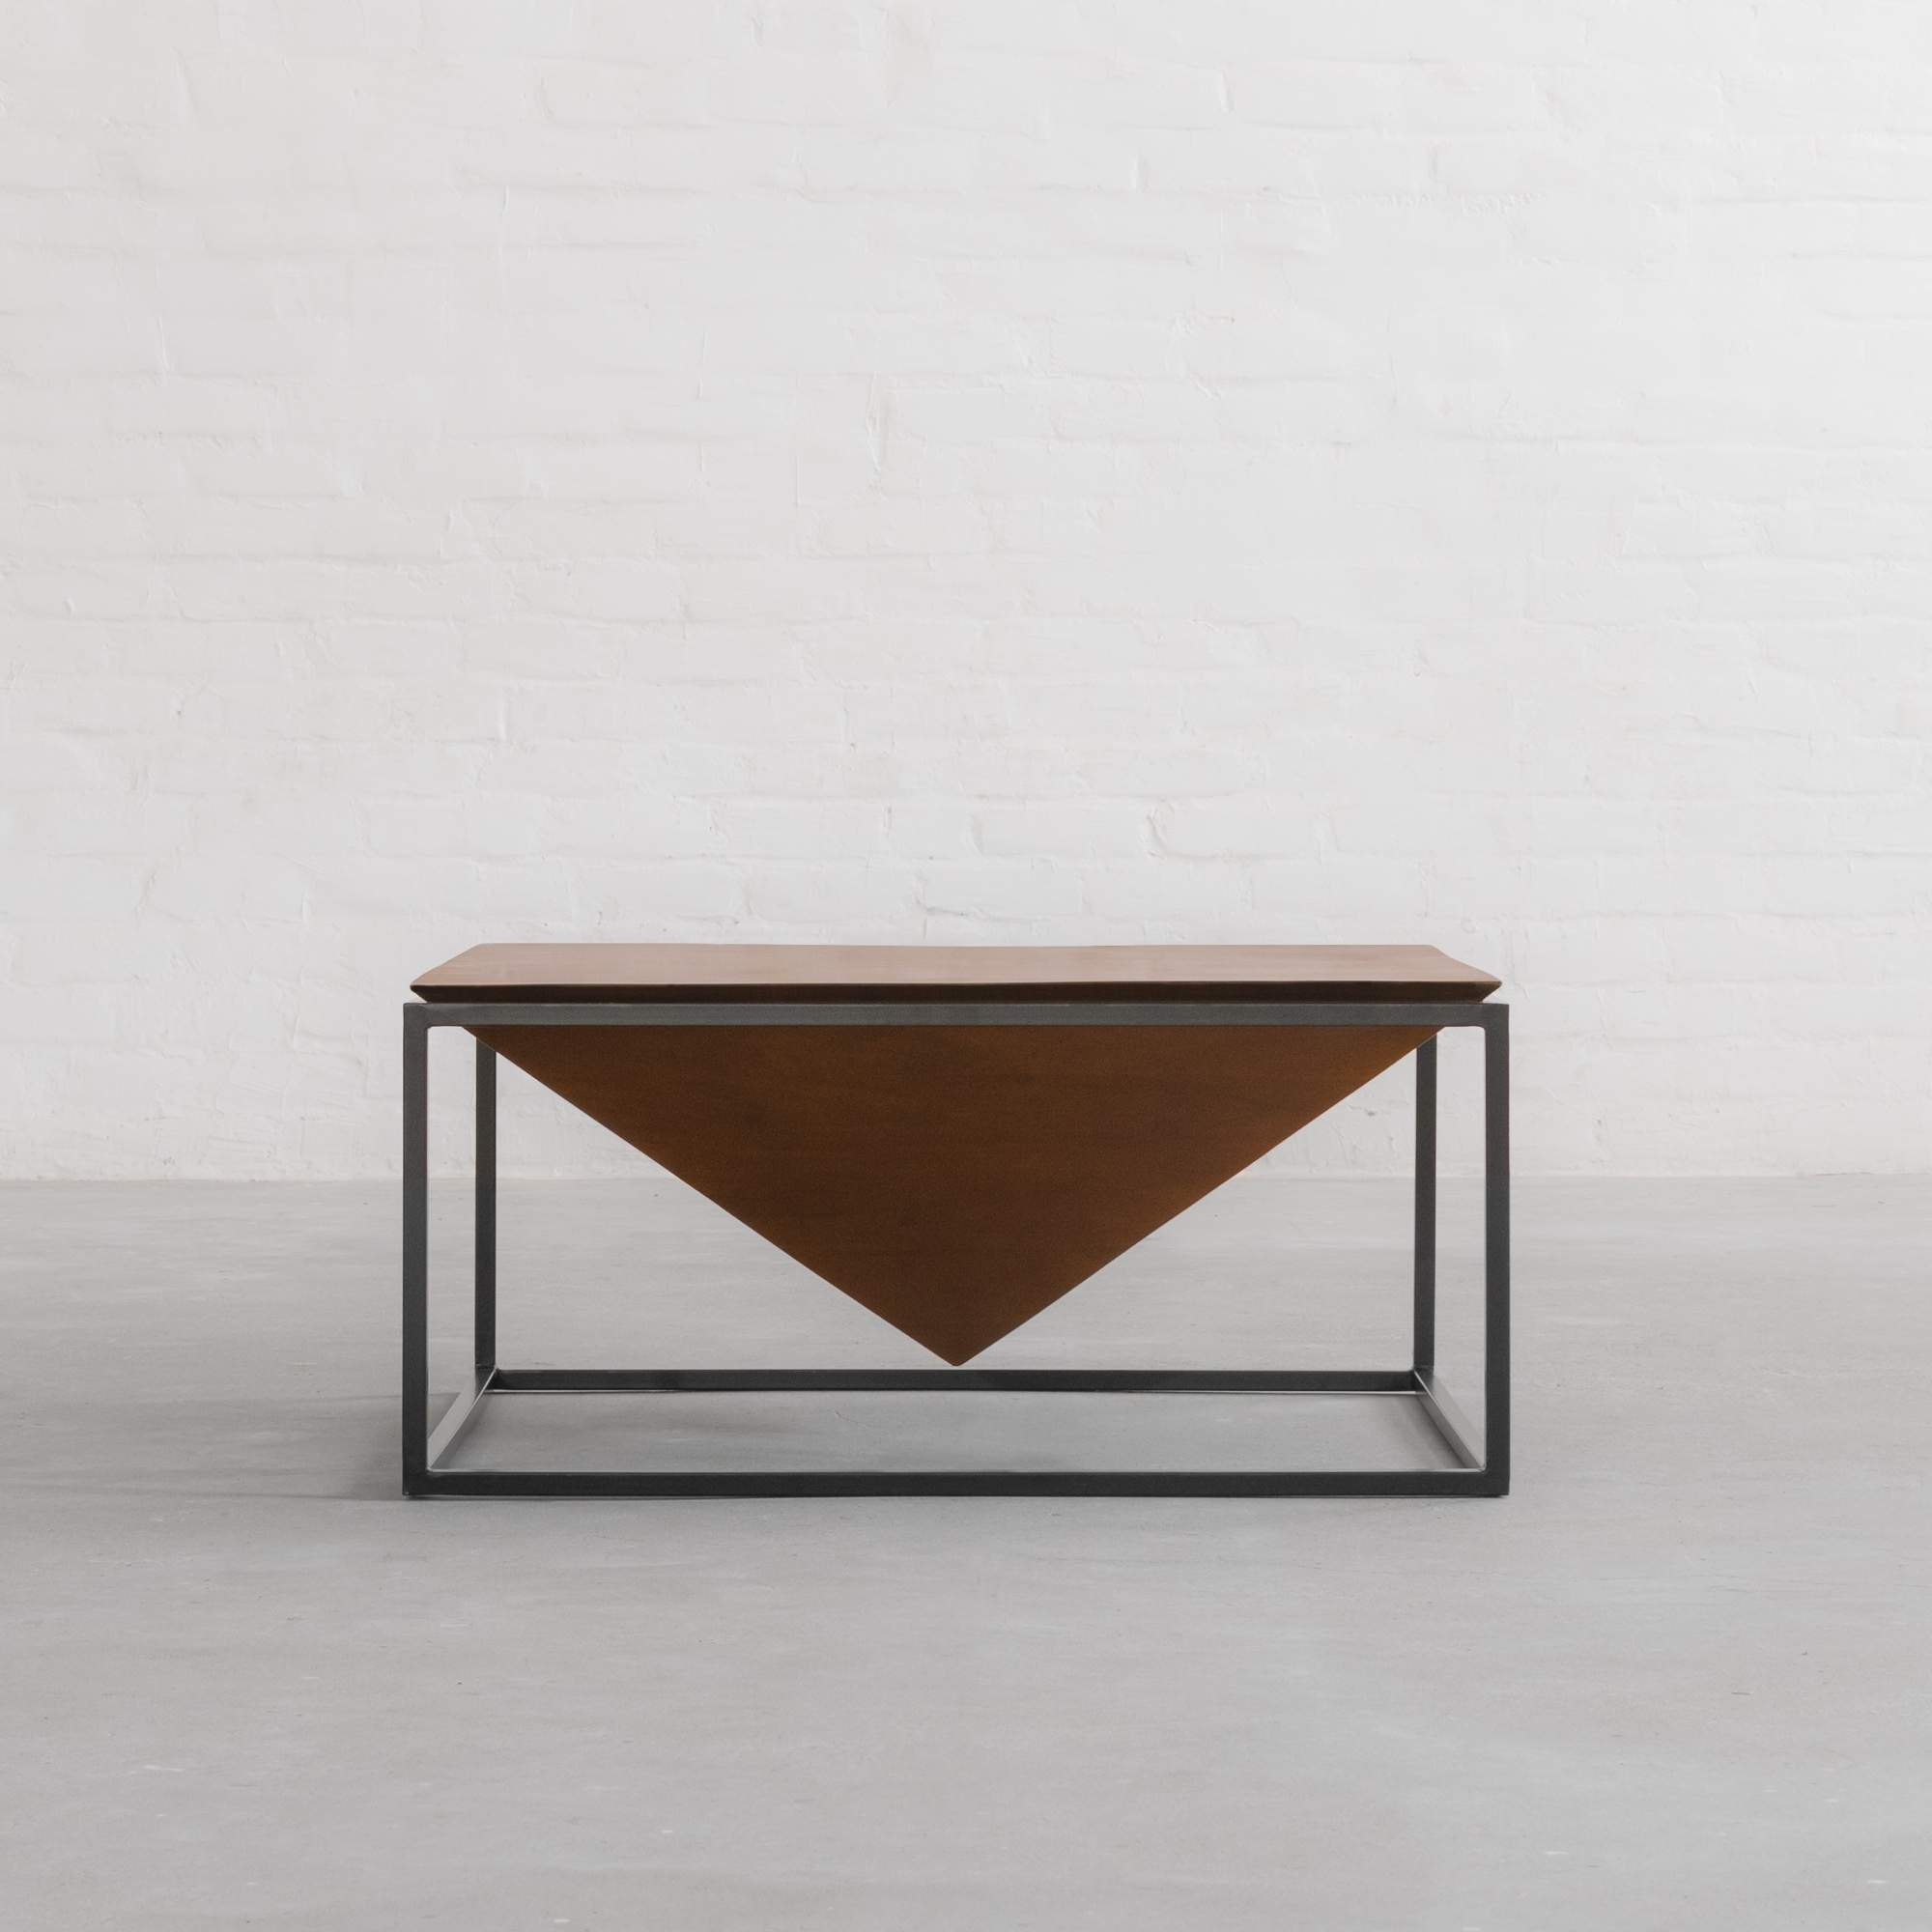 Fashionable Inverted Triangle Coffee Tables Intended For Louvre Coffee Table (View 9 of 20)